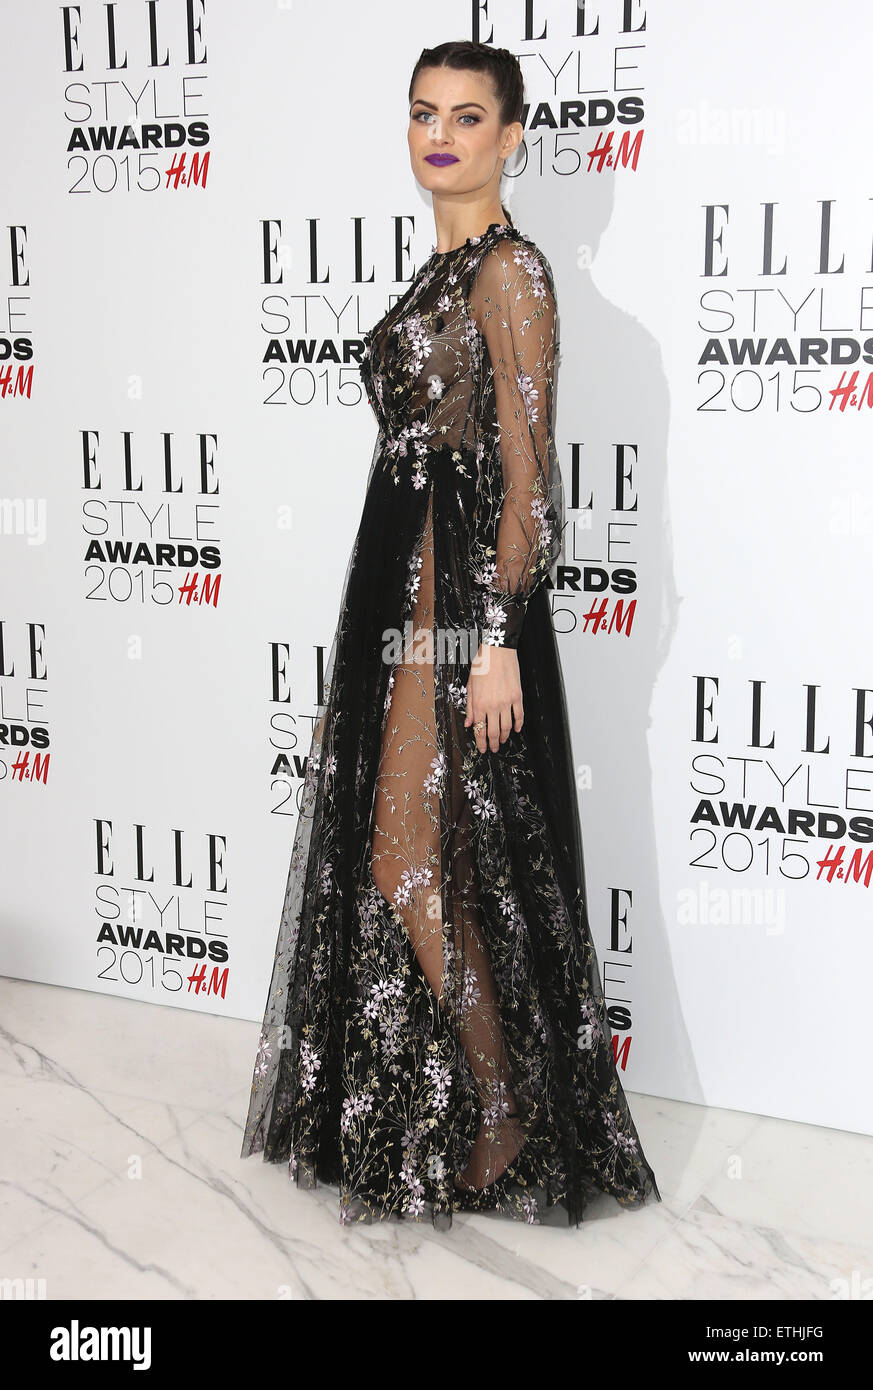 The Elle Style Awards 2017 Held At Walkie Talkie Building Arrivals Featuring Isabeli Fontana Where London United Kingdom When 24 Feb Credit